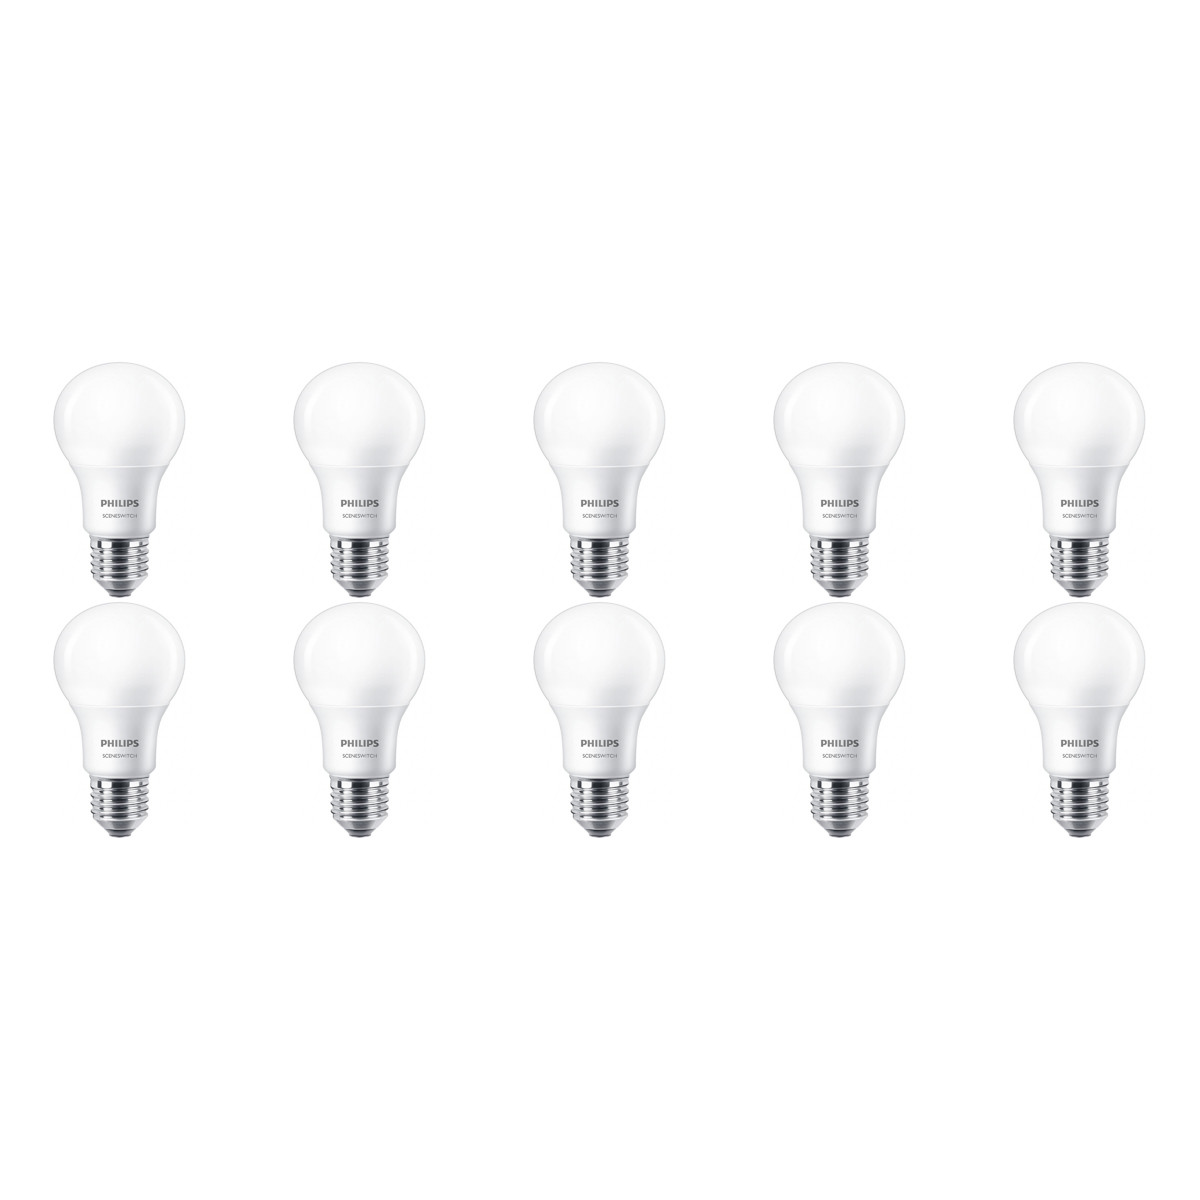 PHILIPS - LED Lamp 10 Pack - SceneSwitch 827 A60 - E27 Fitting - Dimbaar - 2W-8W